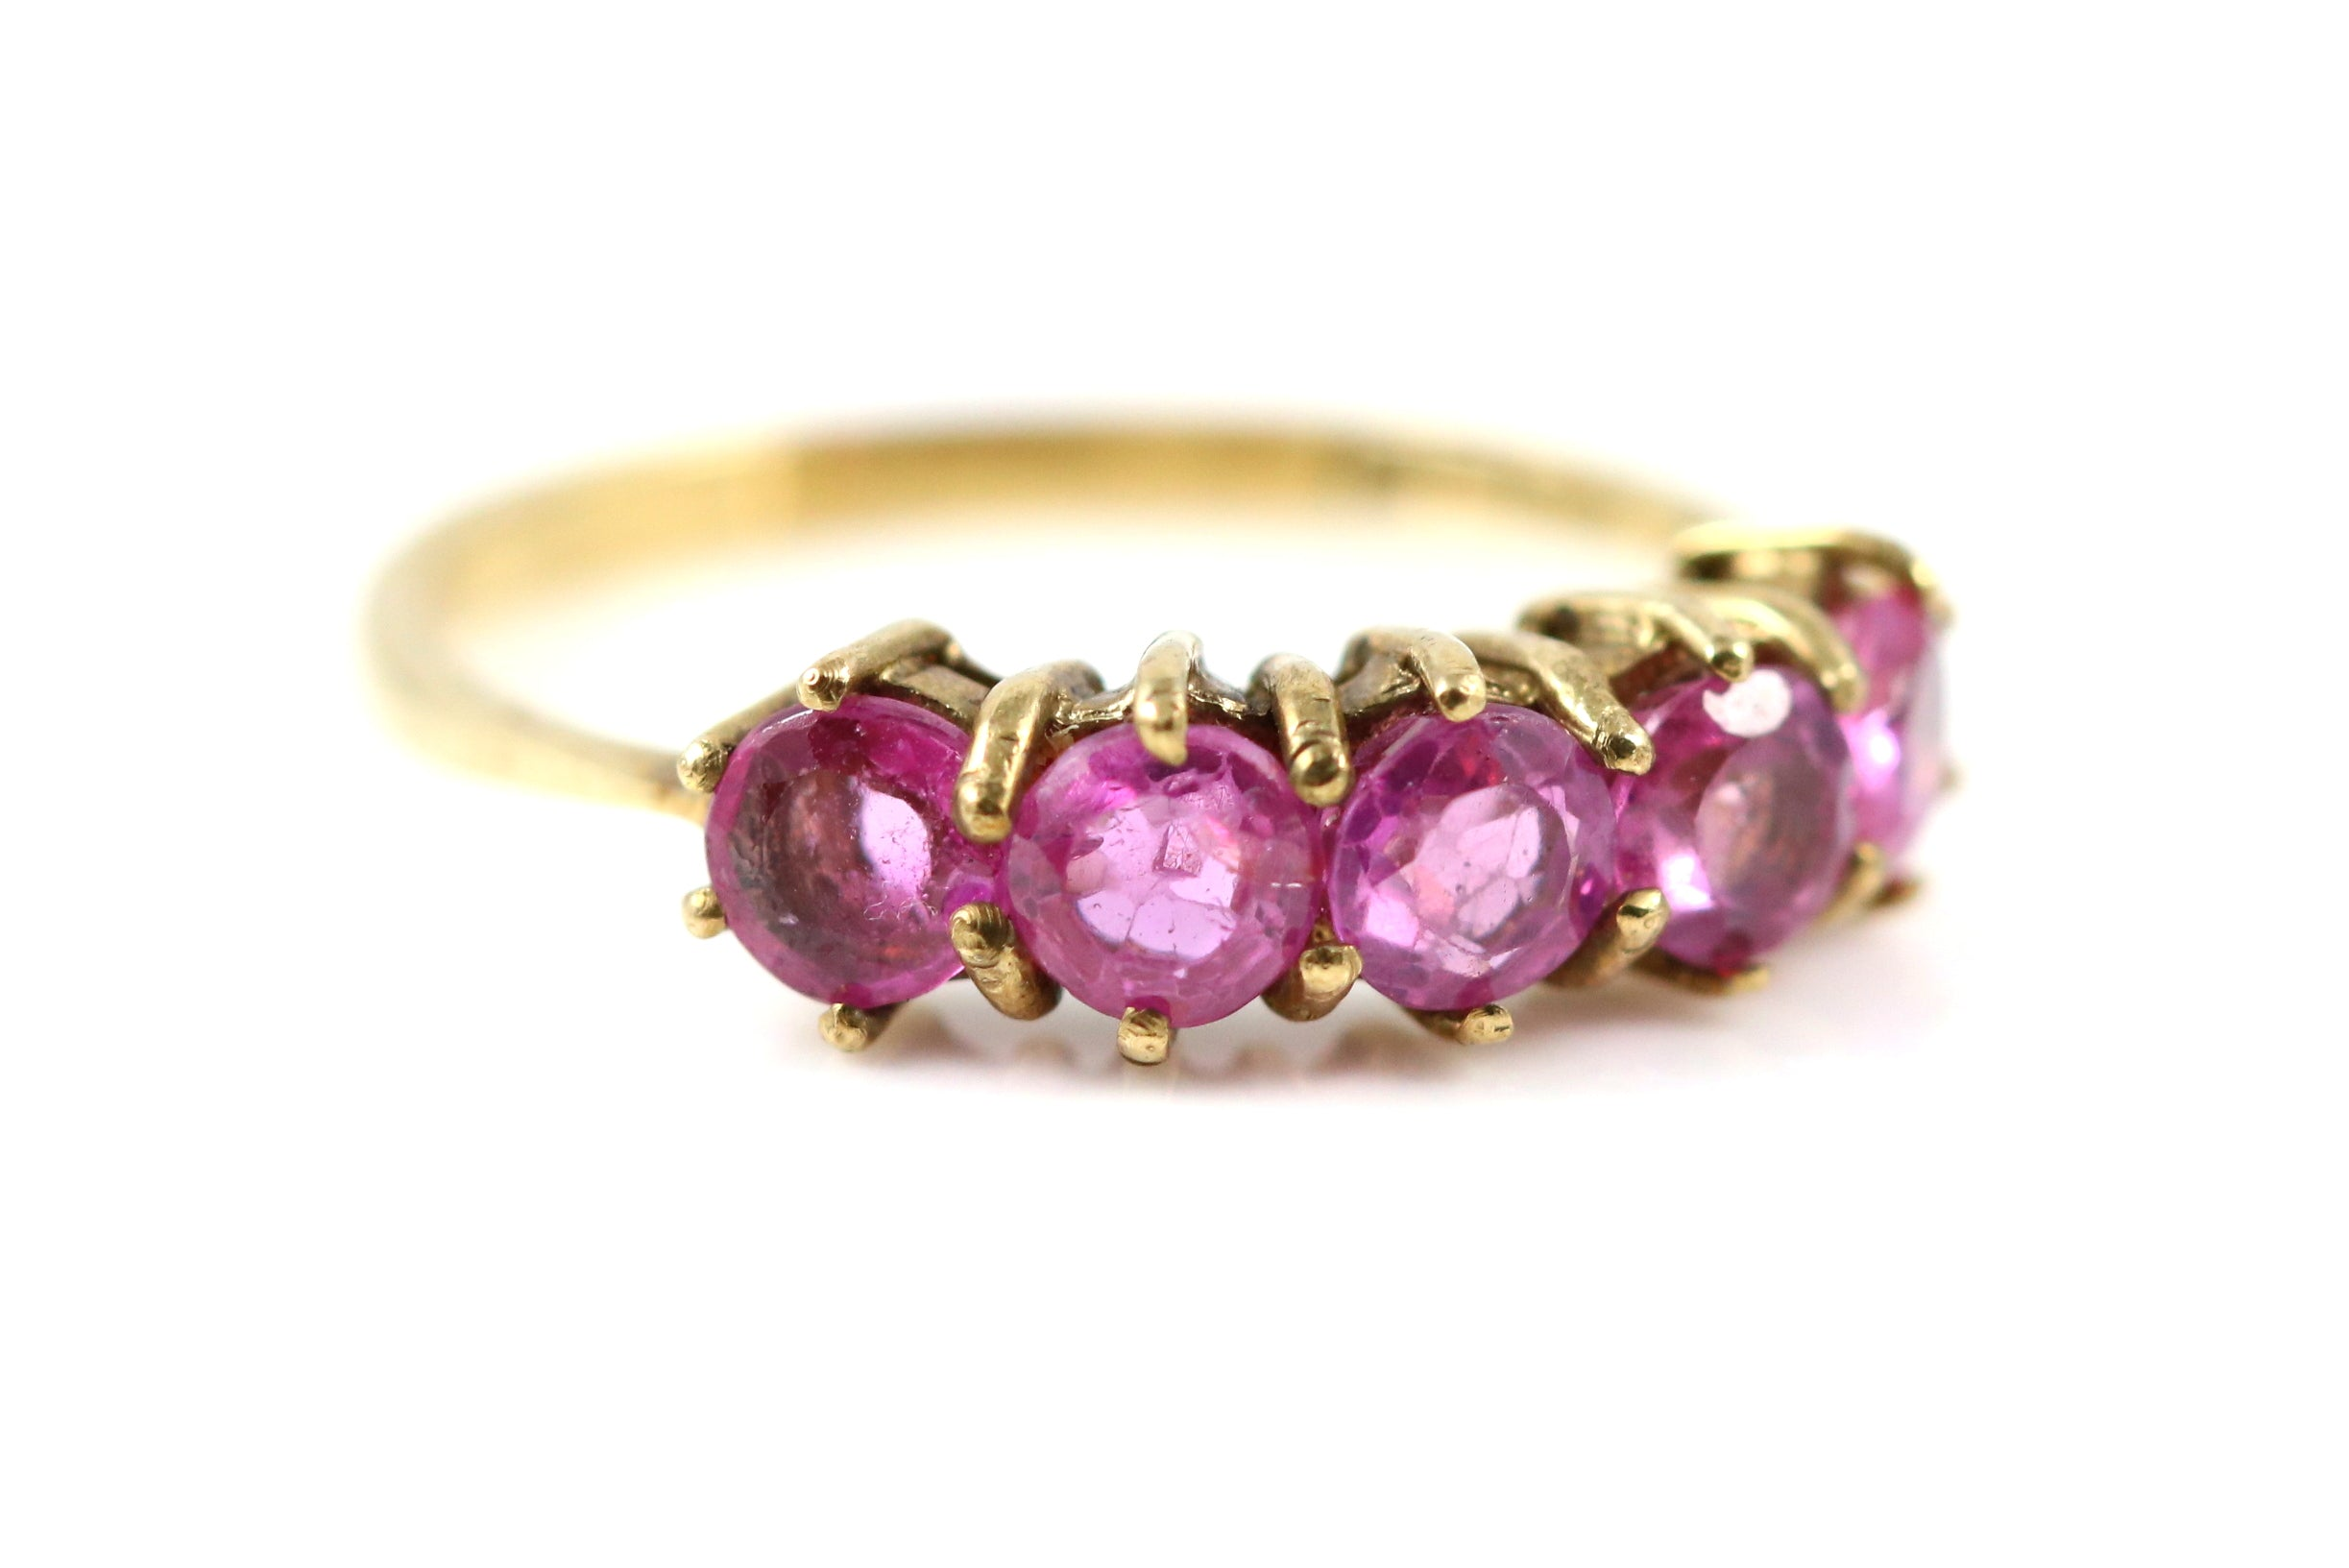 9ct Gold Vintage Pink Sapphire Ring